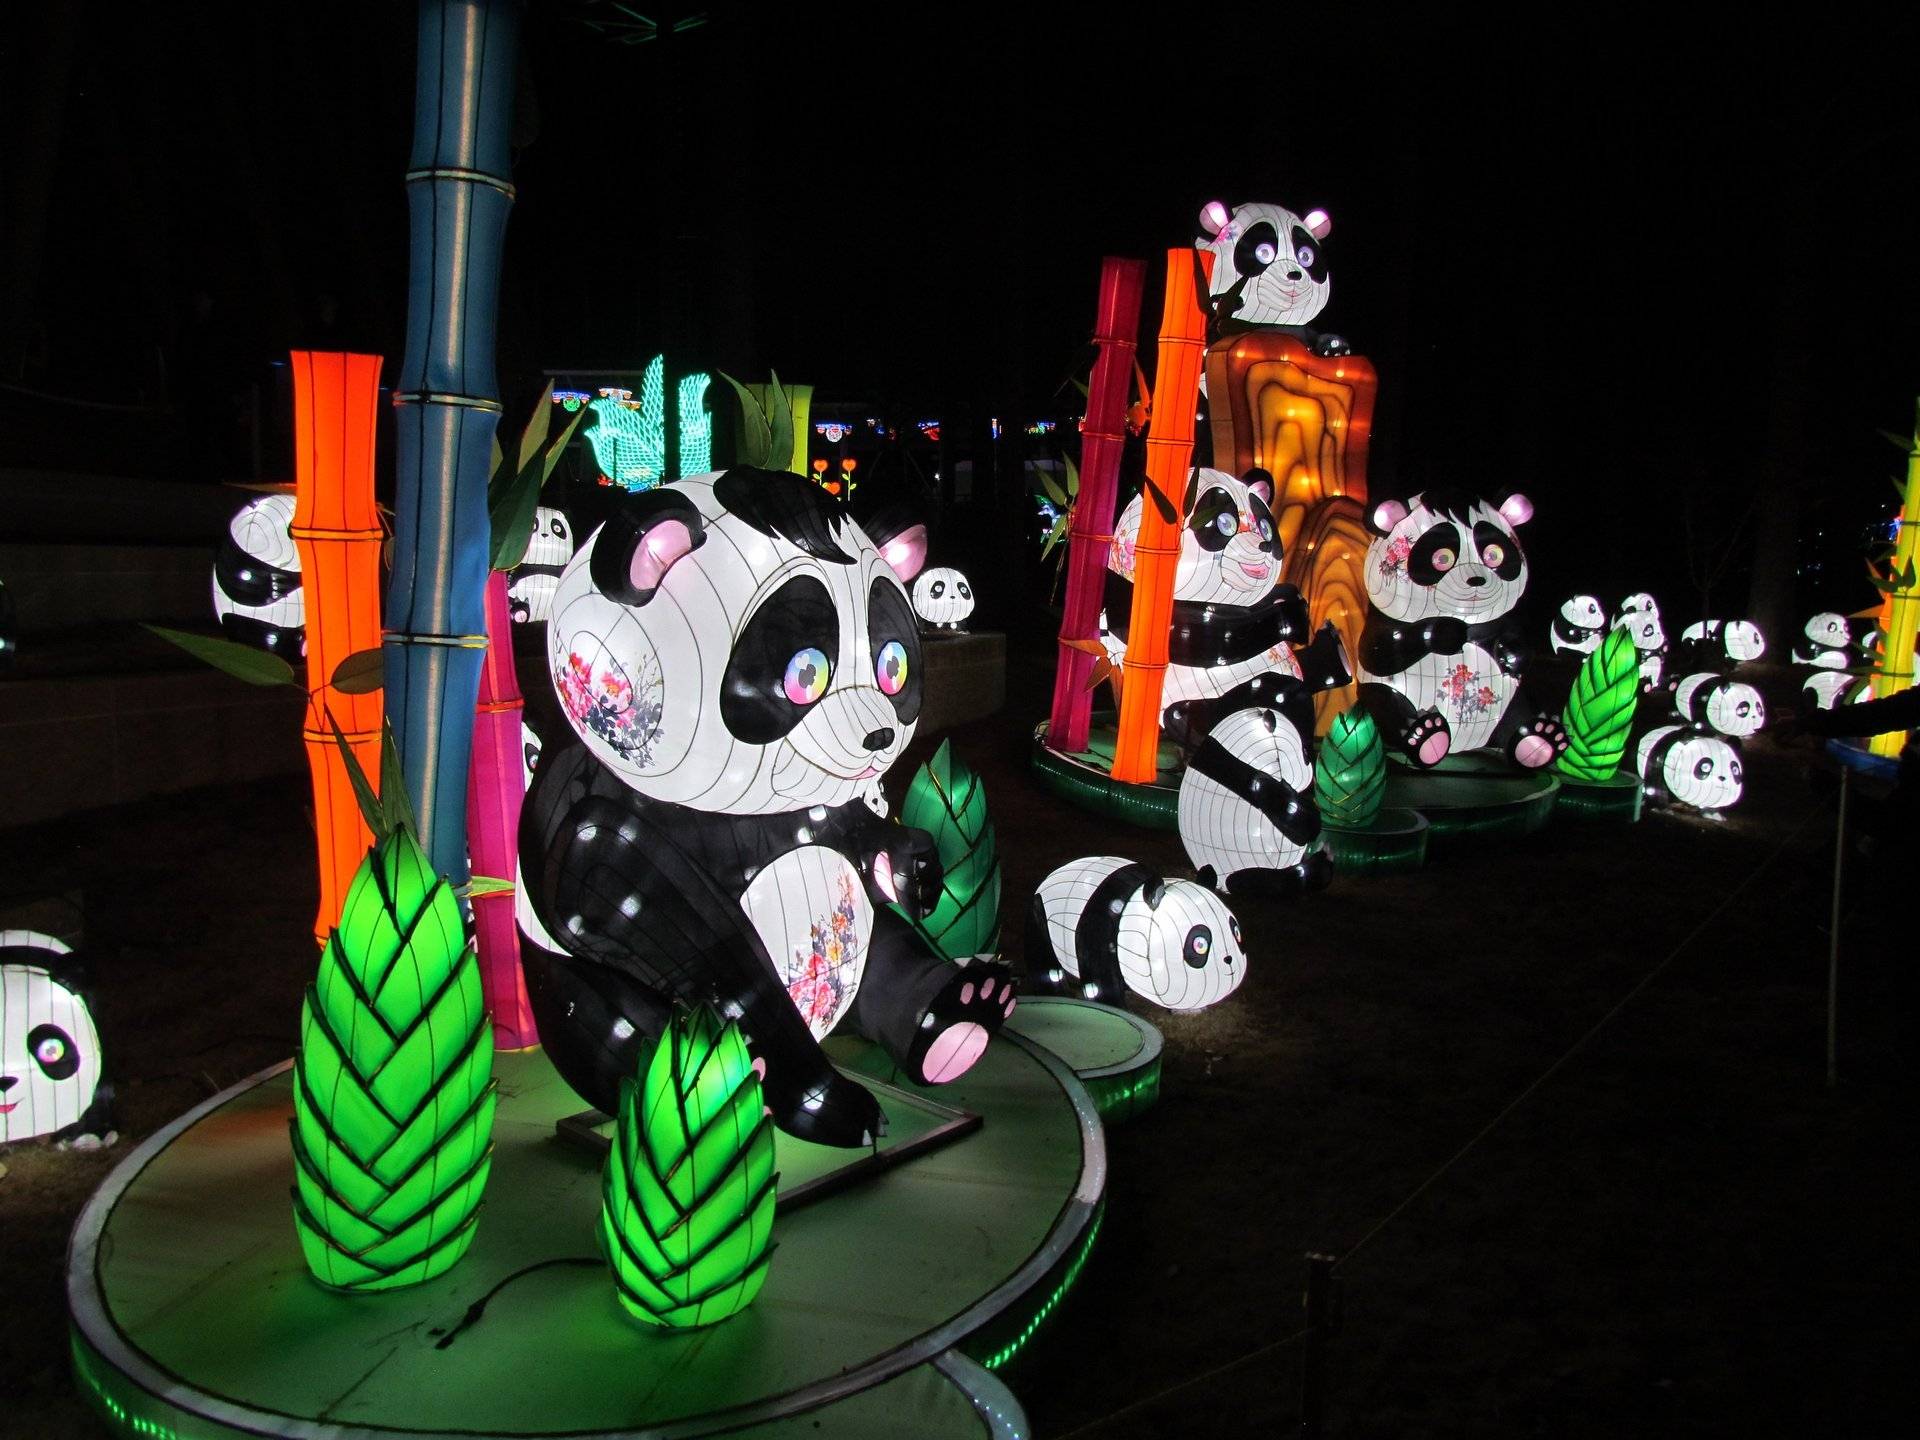 Best time for NC Chinese Lantern Festival in North Carolina 2020